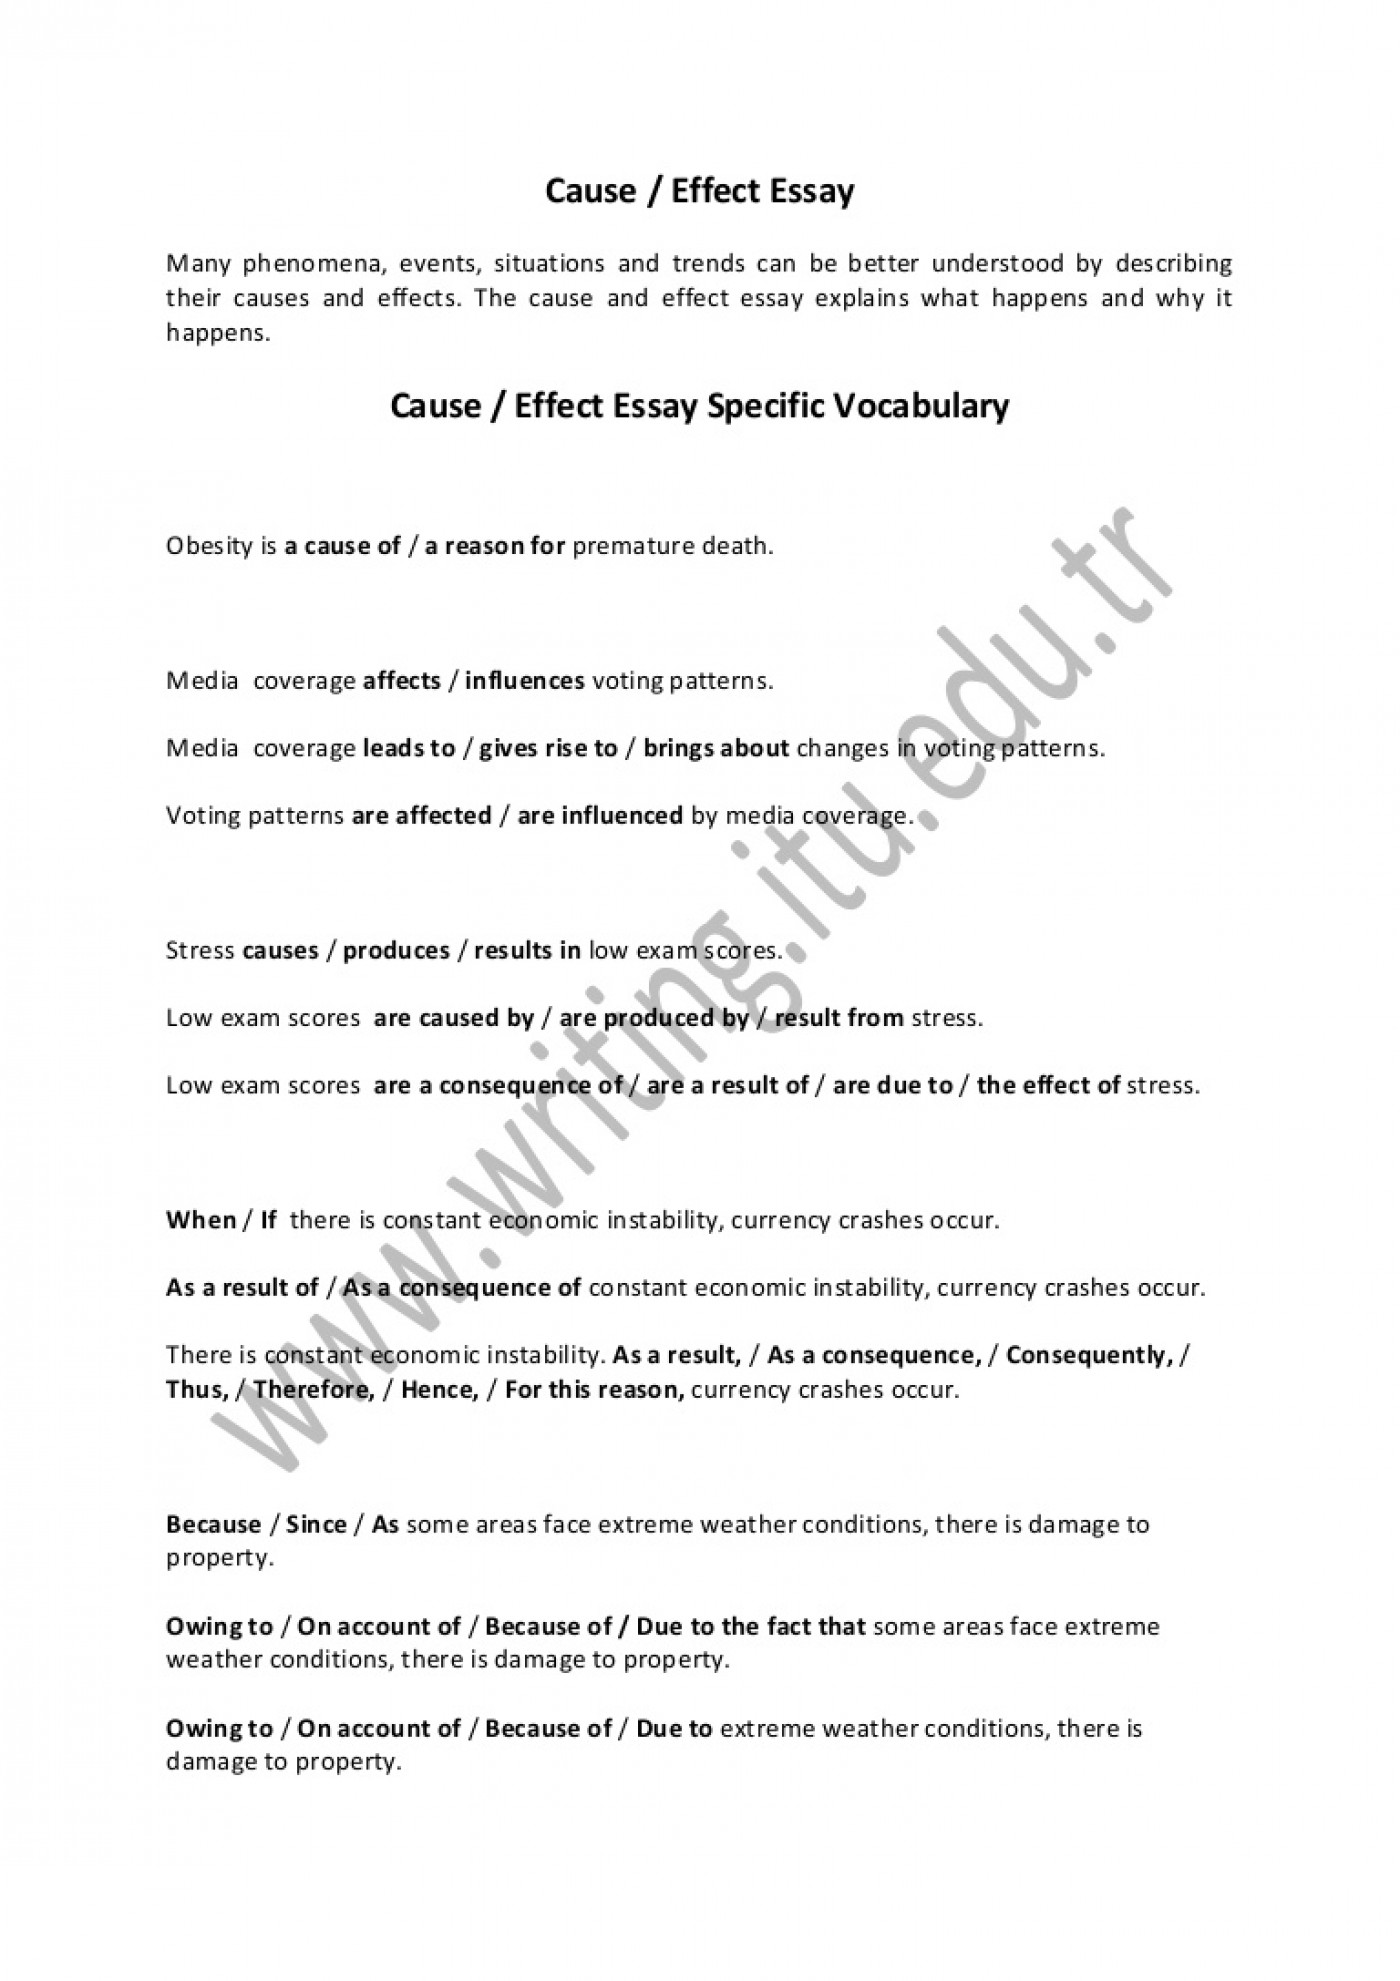 019 Essay Example Causeandeffectessay Thumbnail Cause And Effect Amazing Examples Writing Pdf On Stress 1400